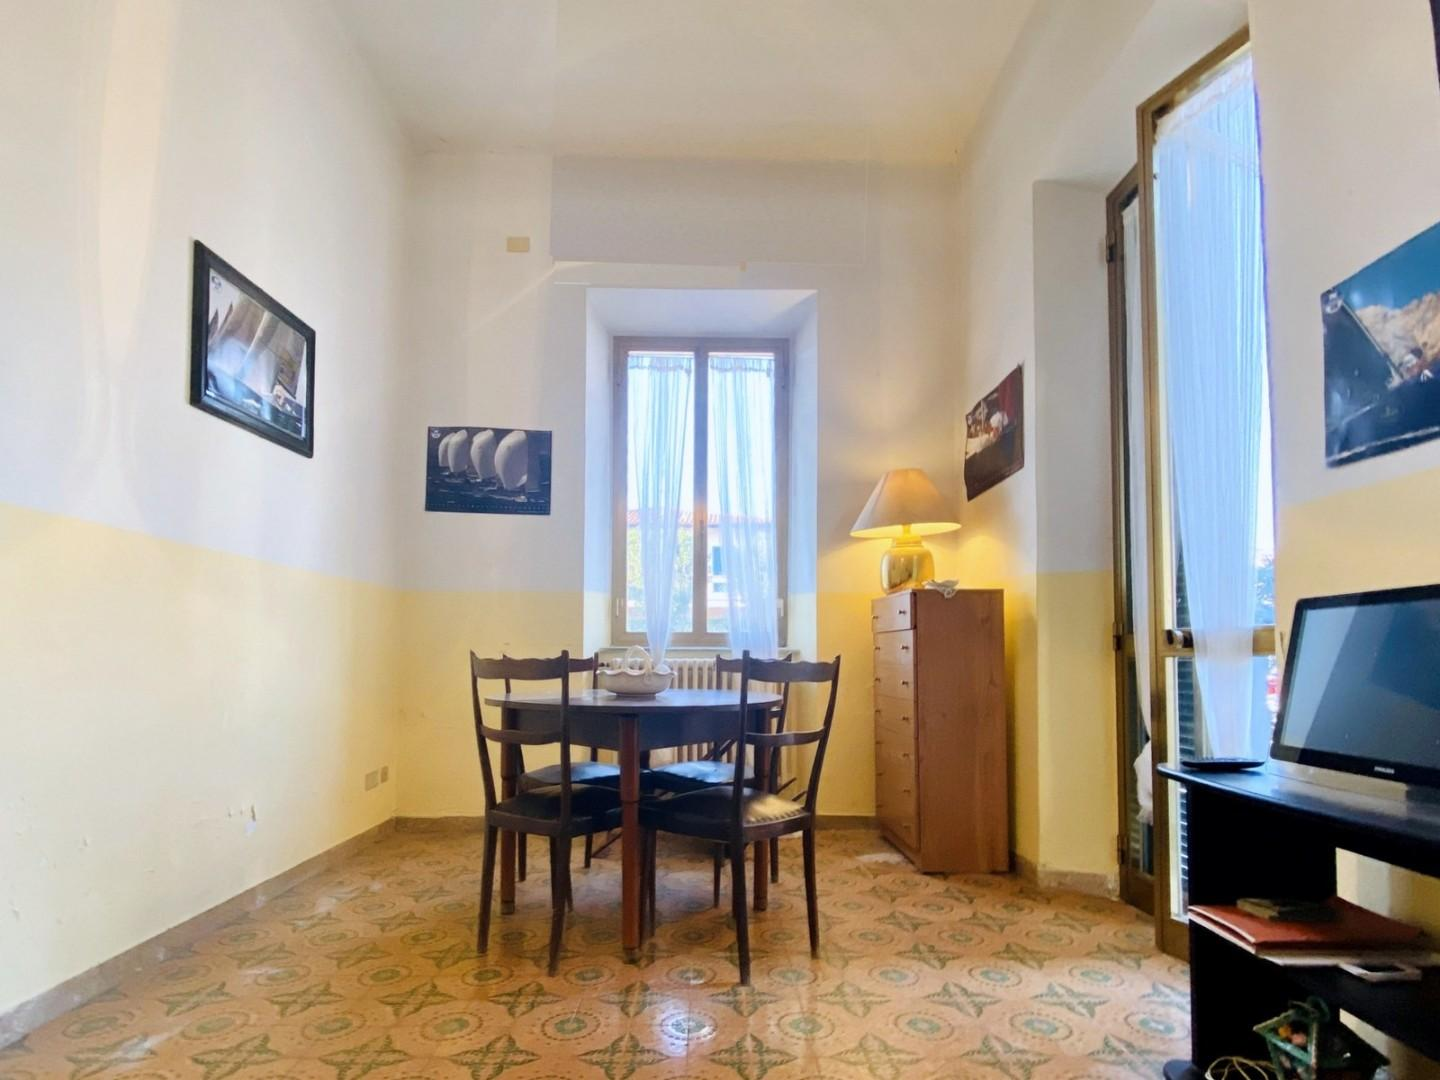 Terraced house for sale in Pietrasanta (LU)